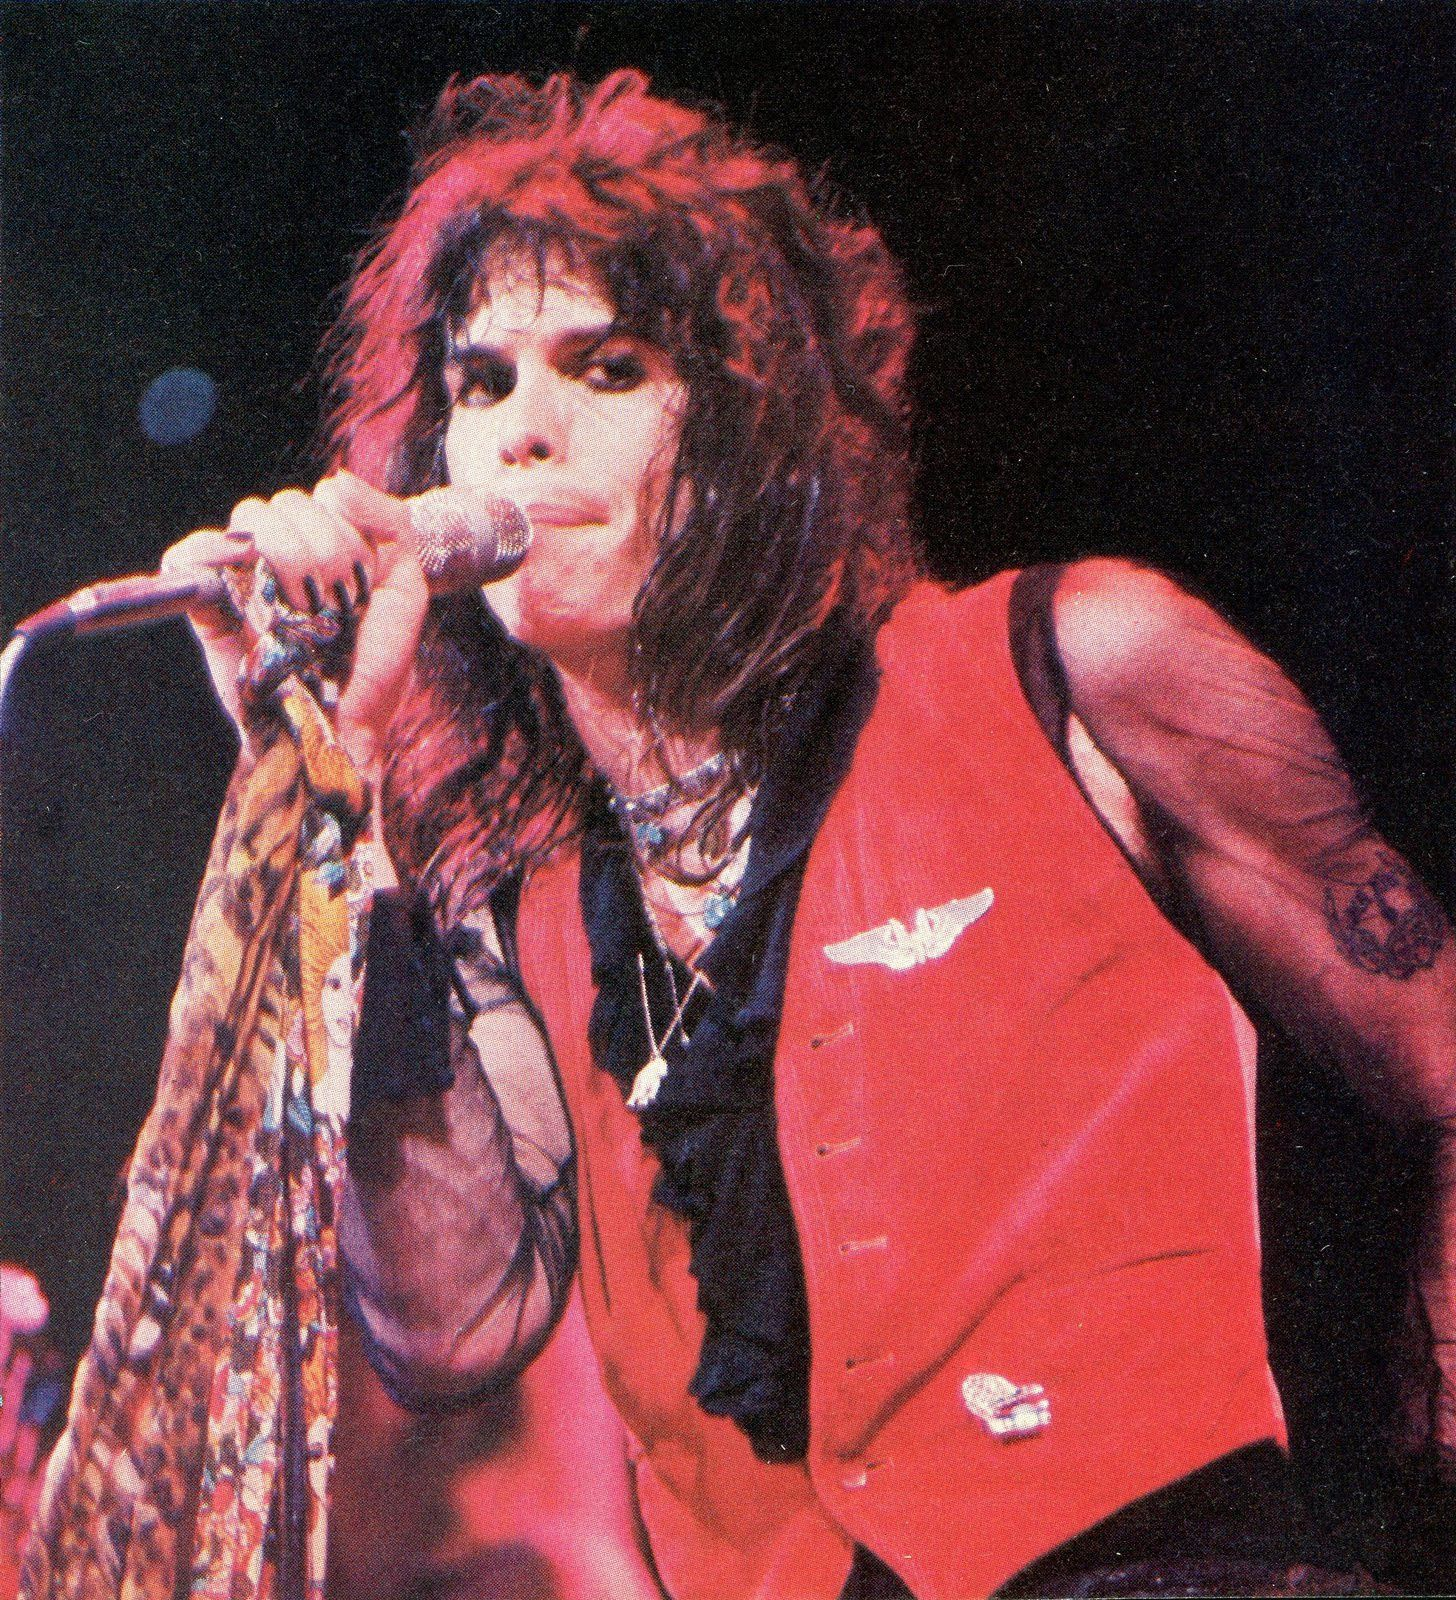 Steven Tyler - 1981 - on stage